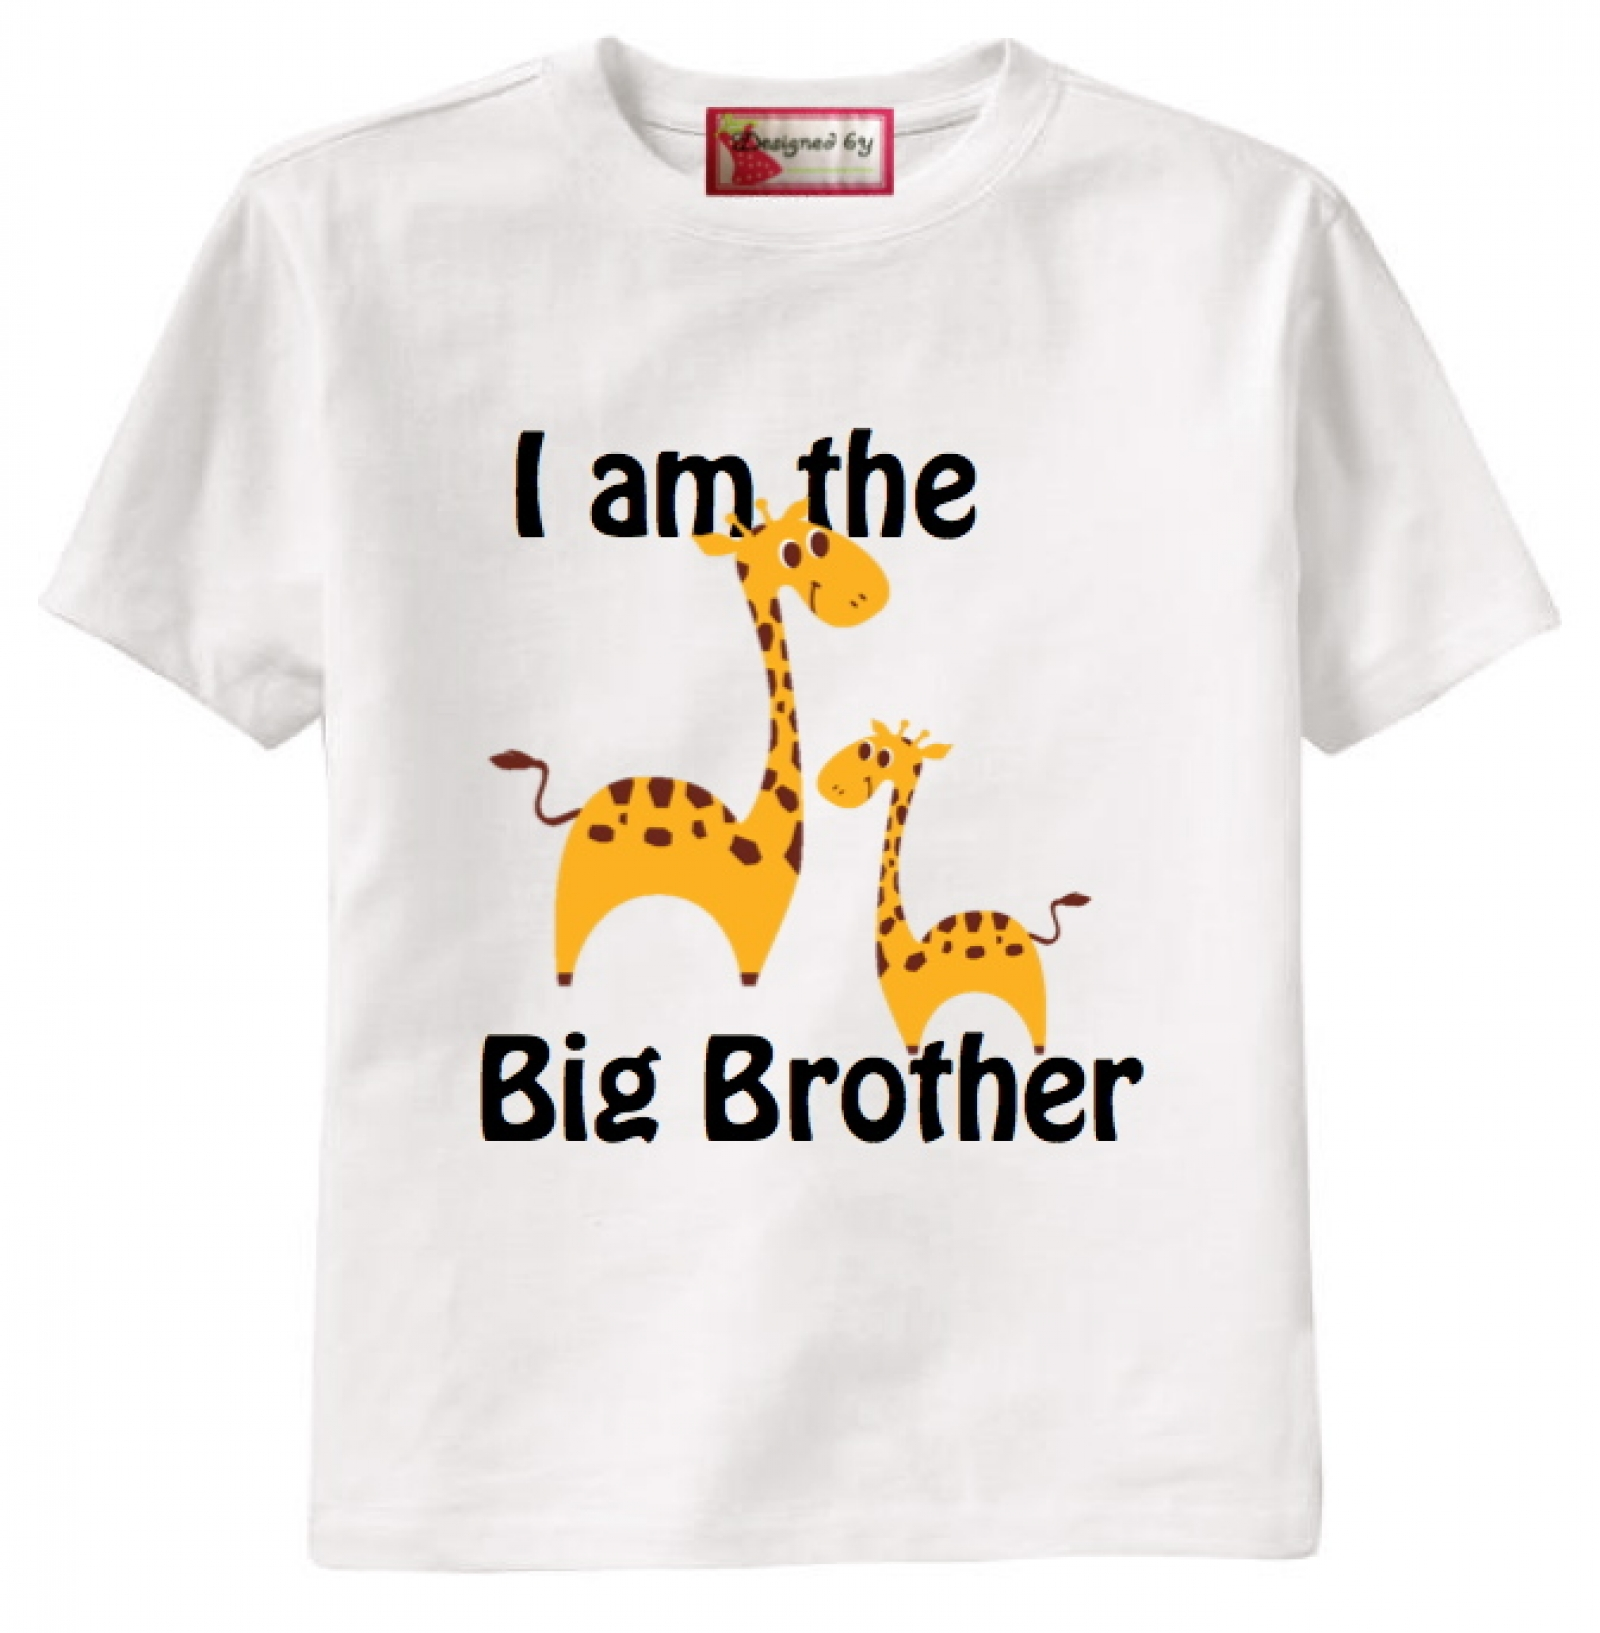 Big & Little Brother. With a new addition to your family, it's time to promote your little guy from only child to big brother! From clothing to picture books, the Big & Little Brother section at stilyaga.tk has everything your little man needs to take on his exciting new role.